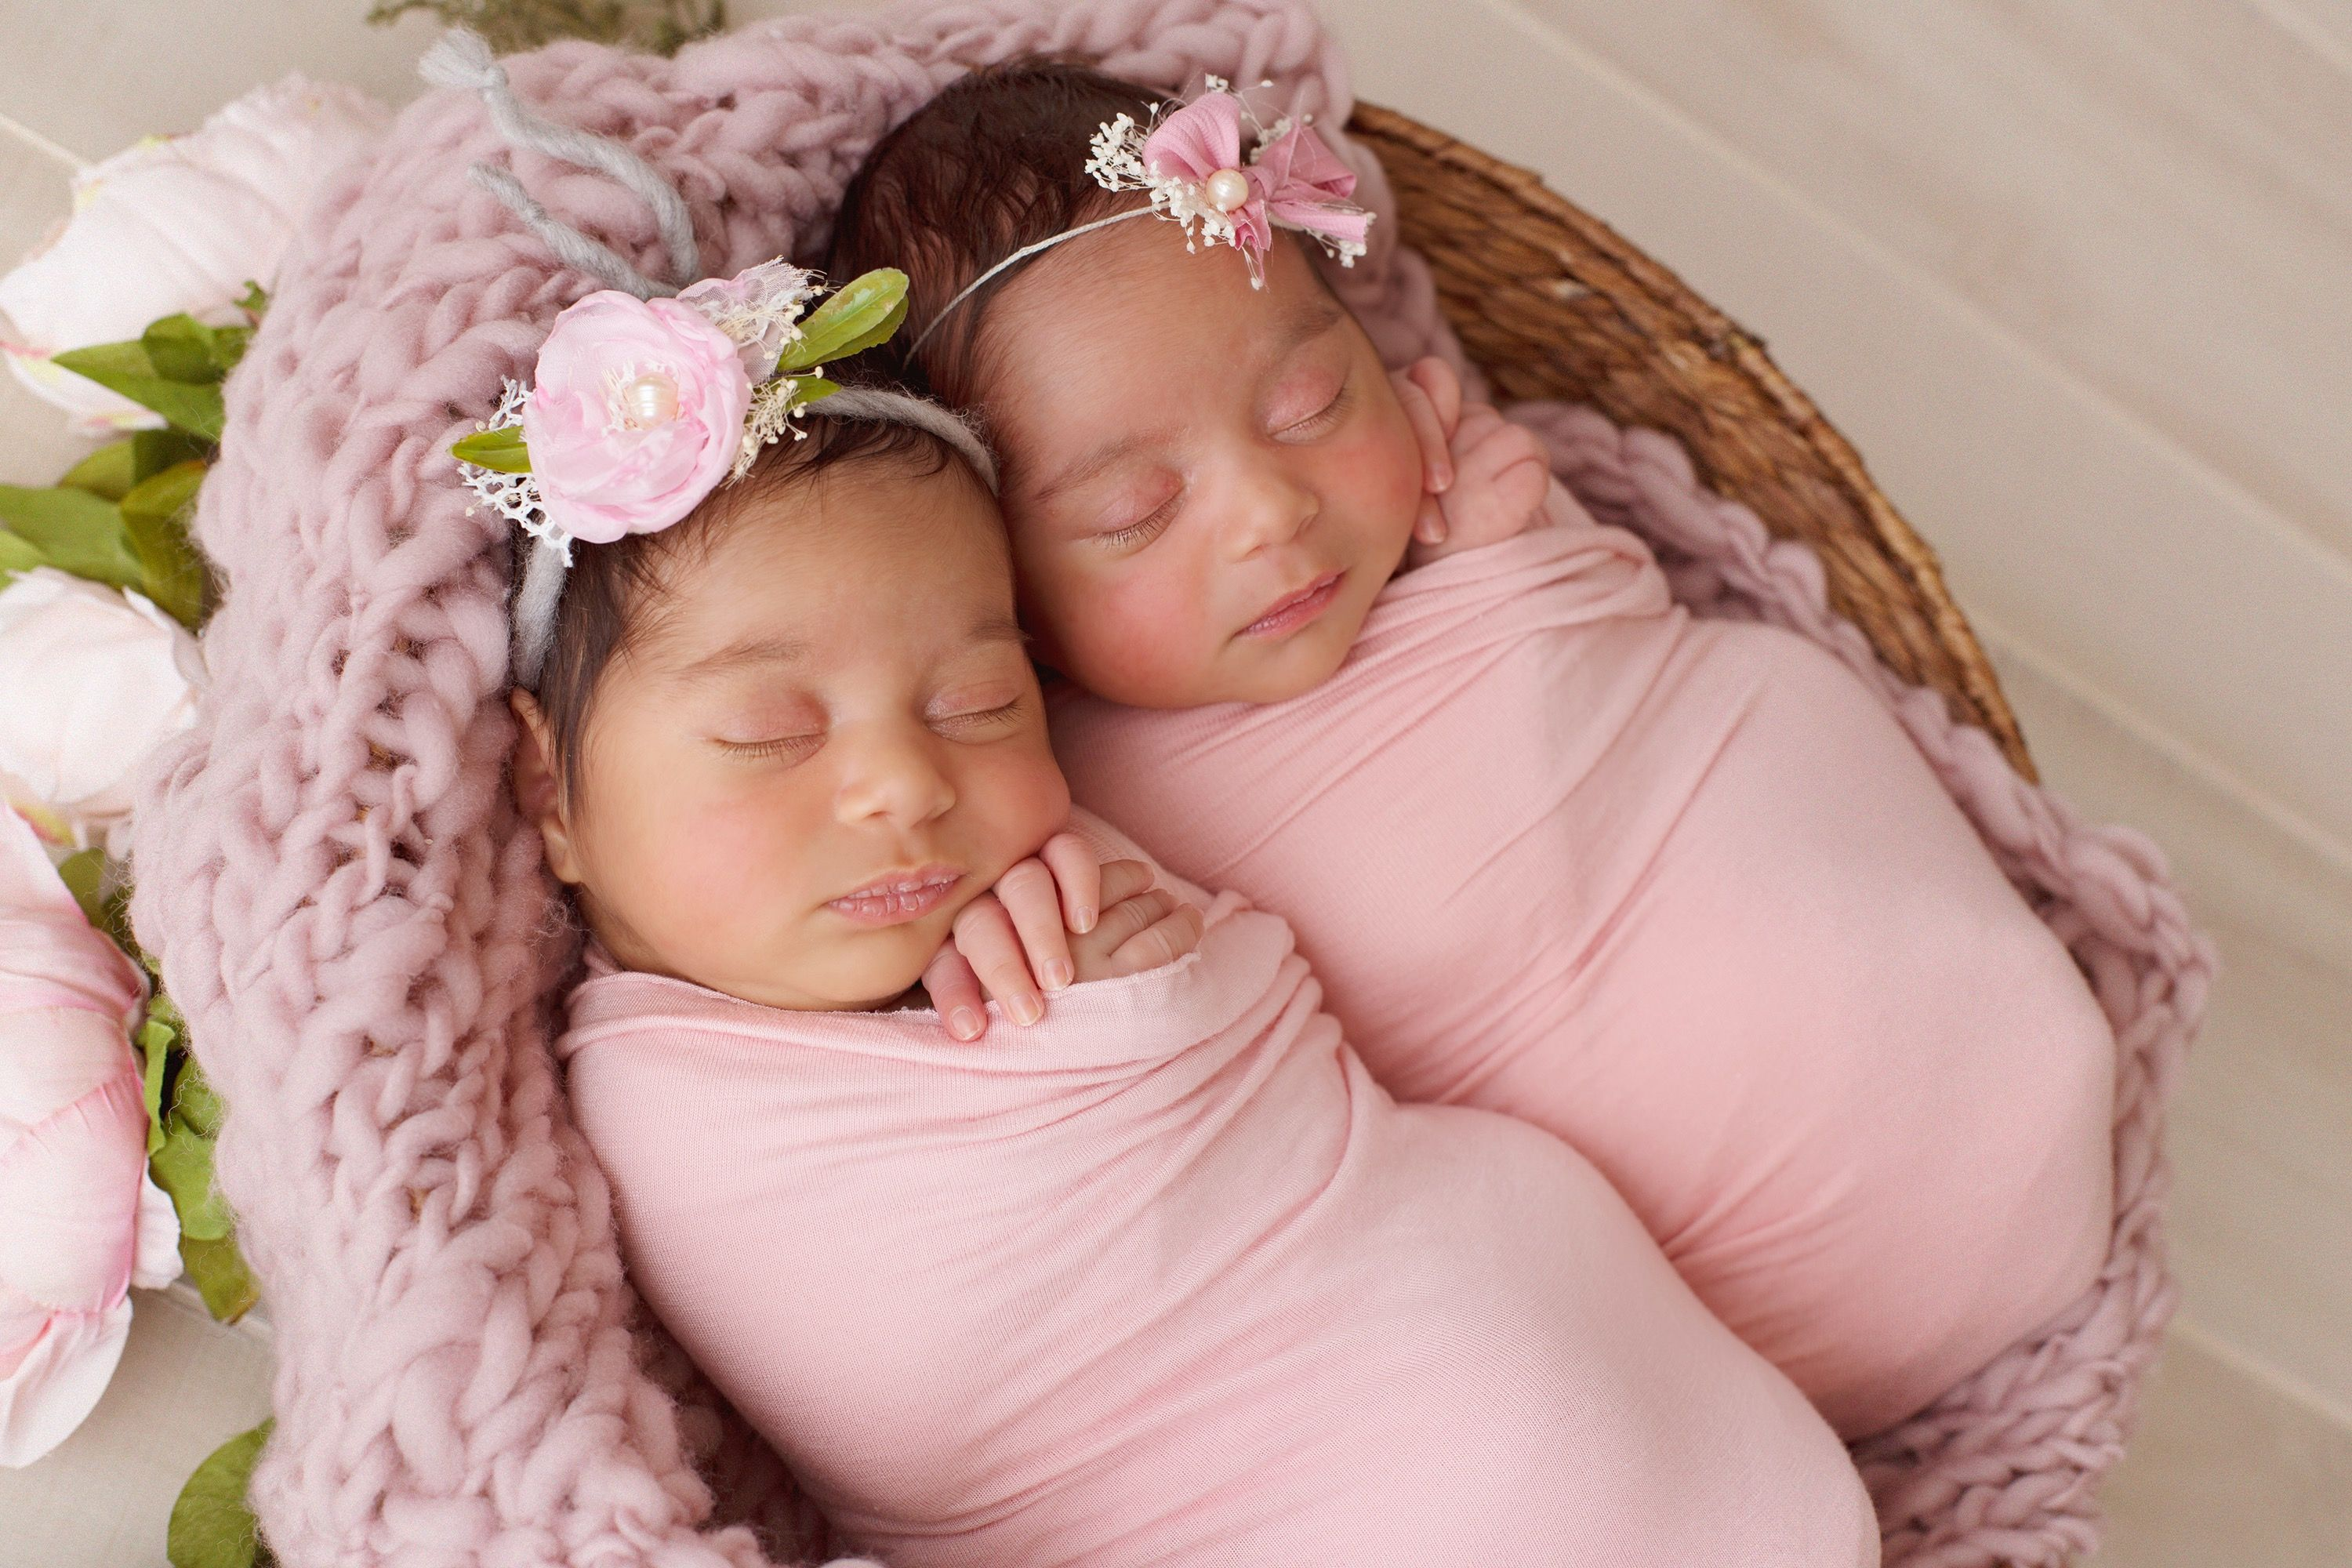 Cypress tx newborn photography twin newborns multiple birth newborn baby girl pictures photography session pink flowers